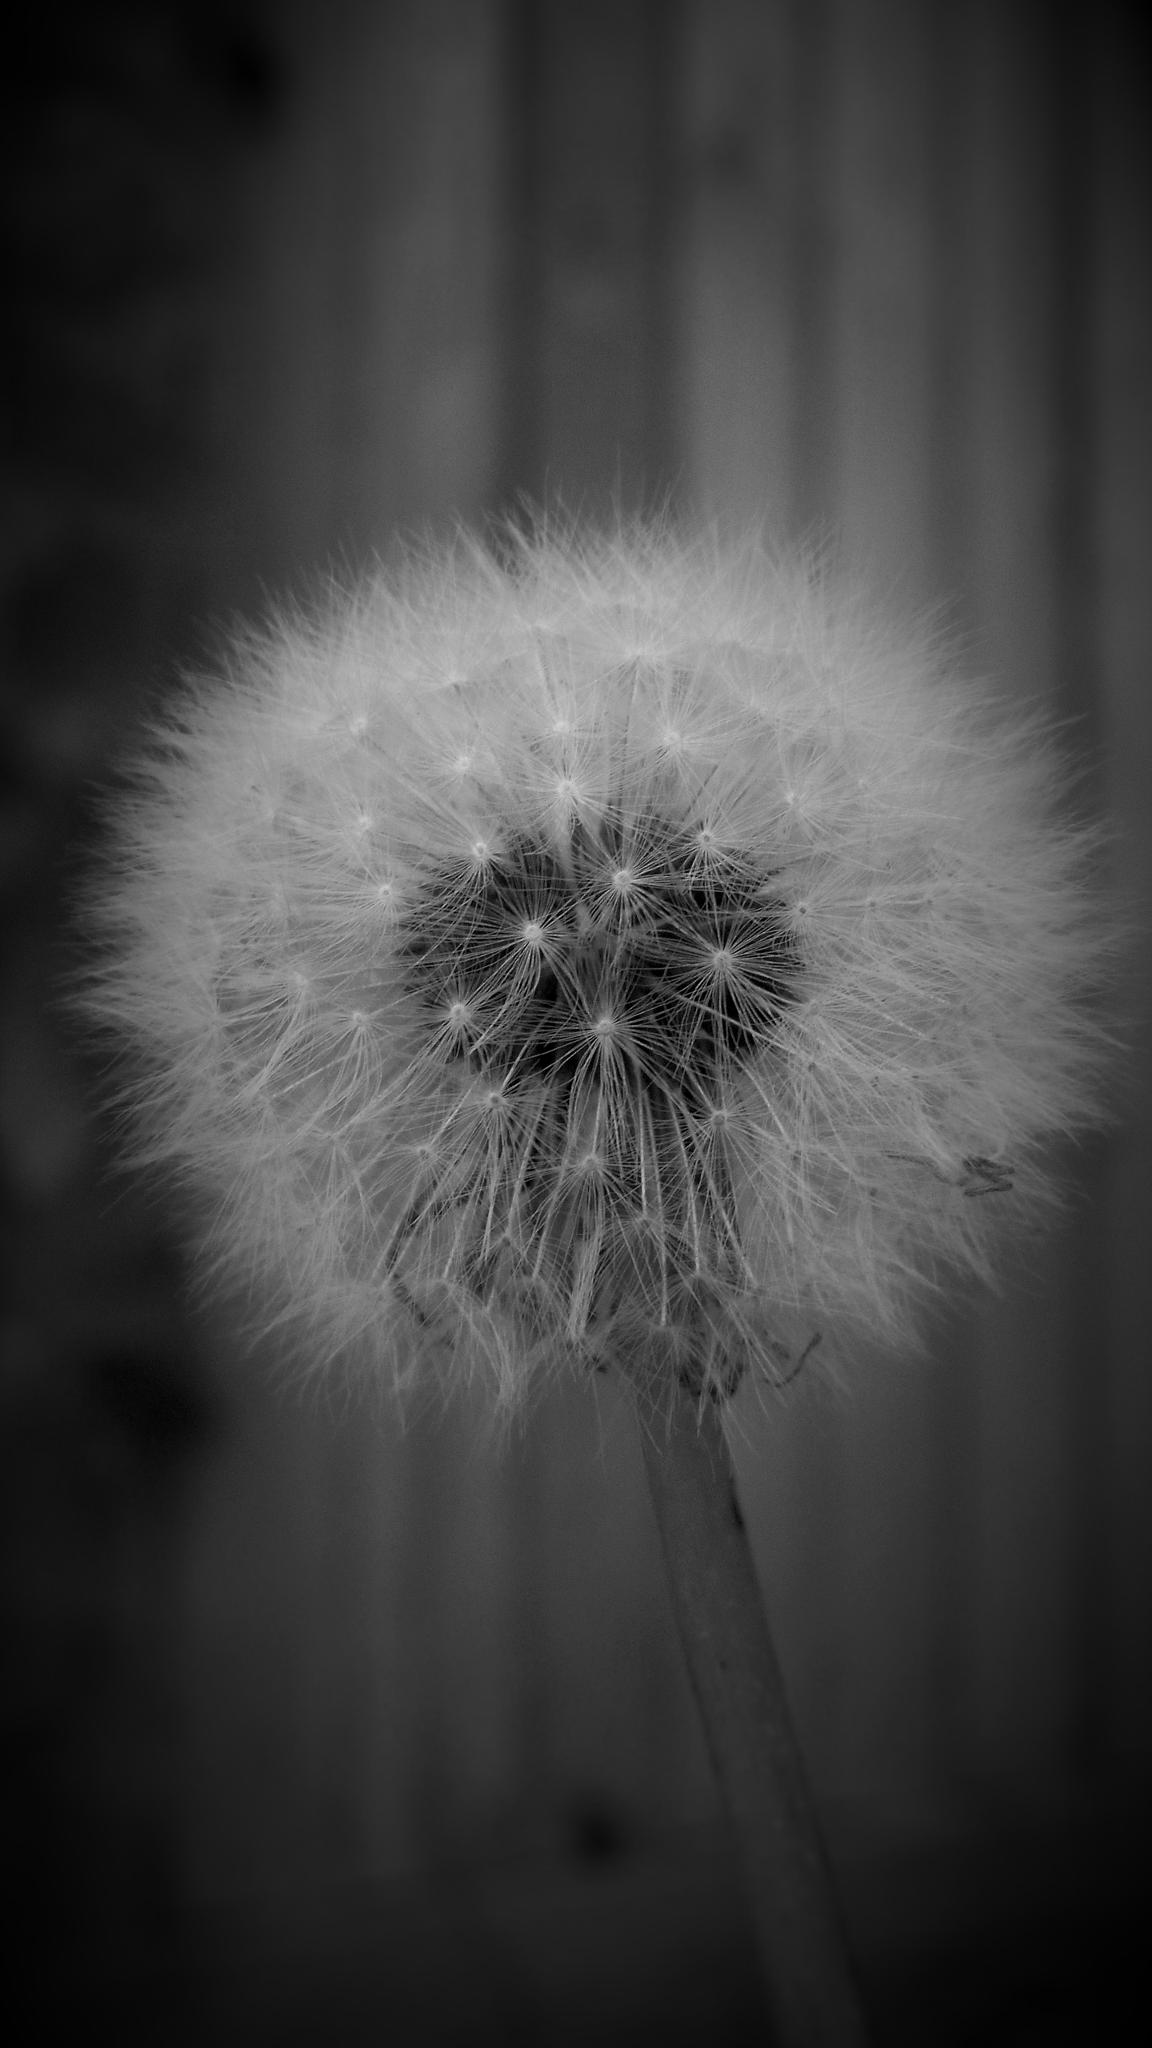 Dandelion Wishes  by fred.clark.359